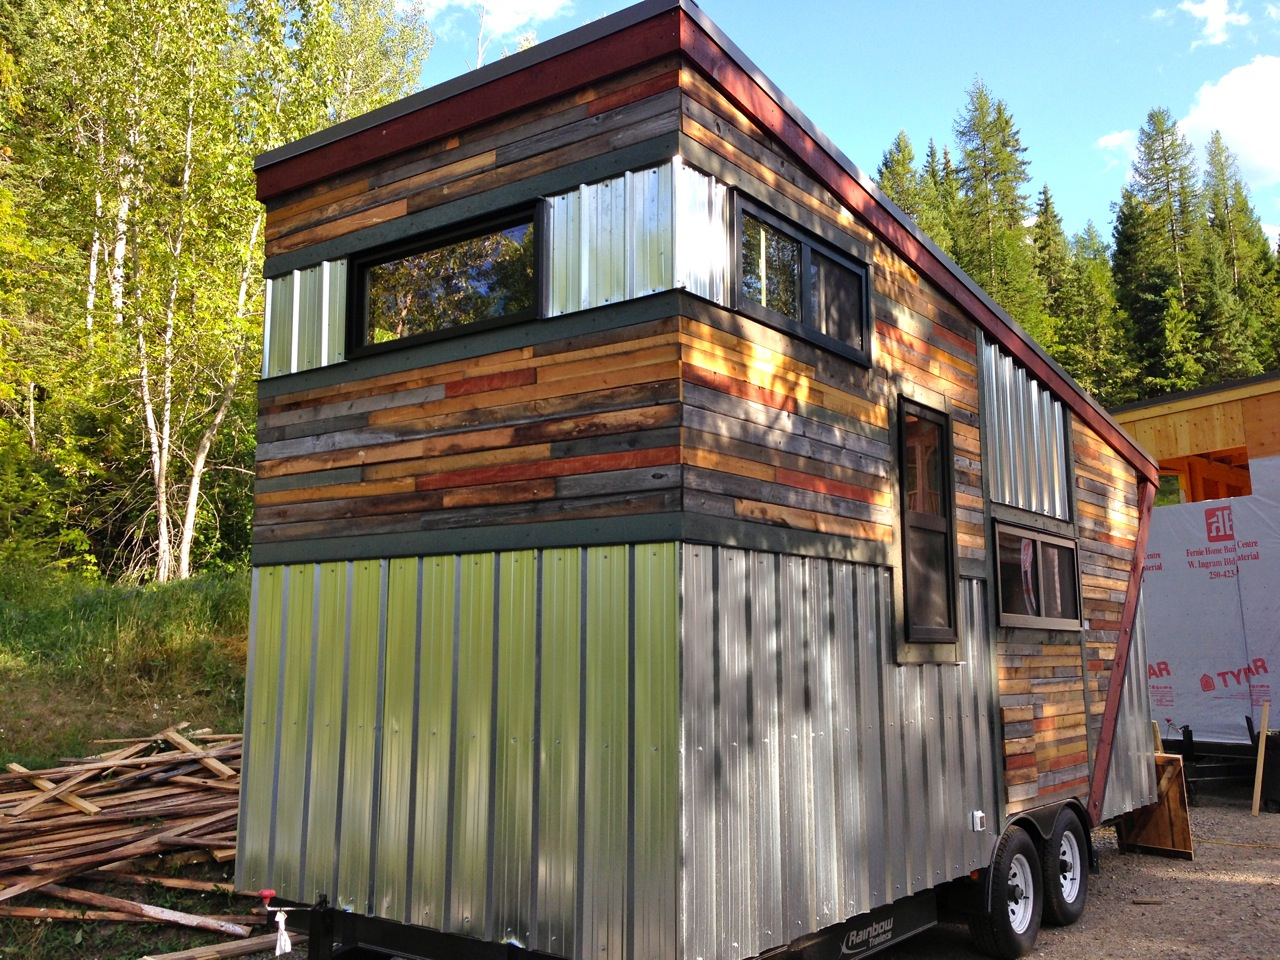 Hummingbird Micro Homes Tiny Homes handmade in Fernie BC The